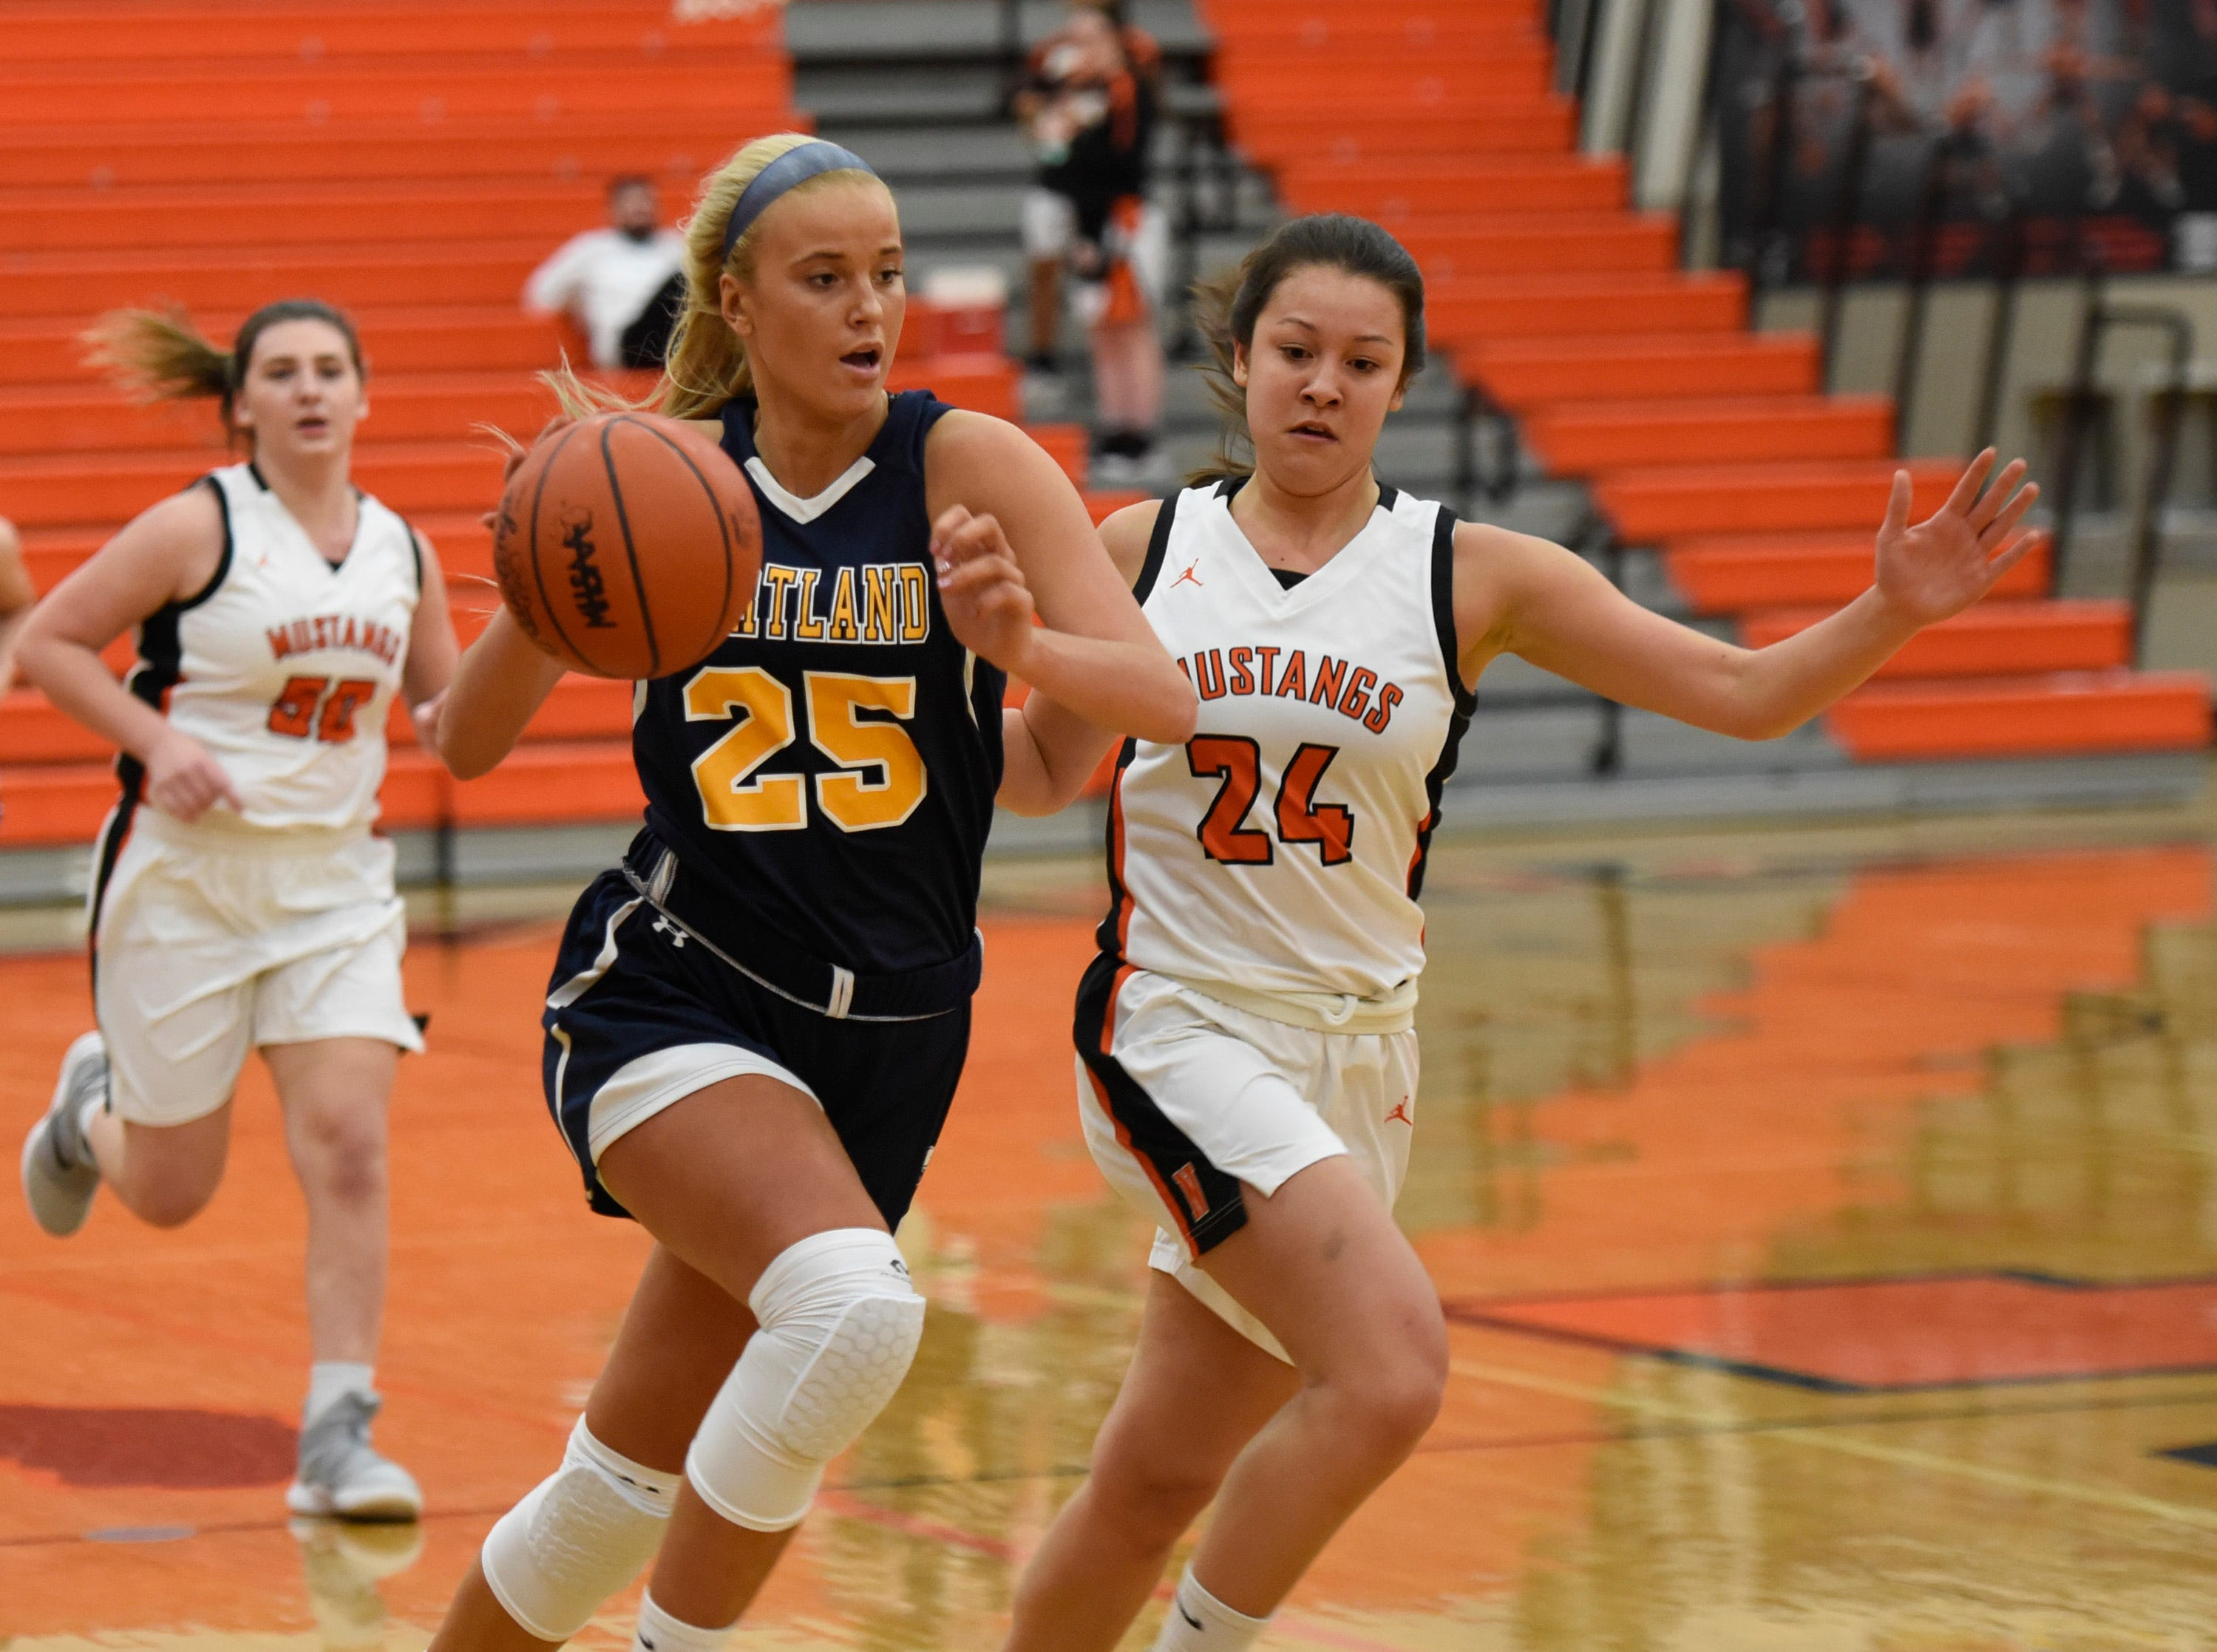 Hartland's Whitney Sollom (25) and Northville's Nicole Martin (24) during a KLAA match up between the Mustangs and Eagles at Northville Jan. 8, 2019